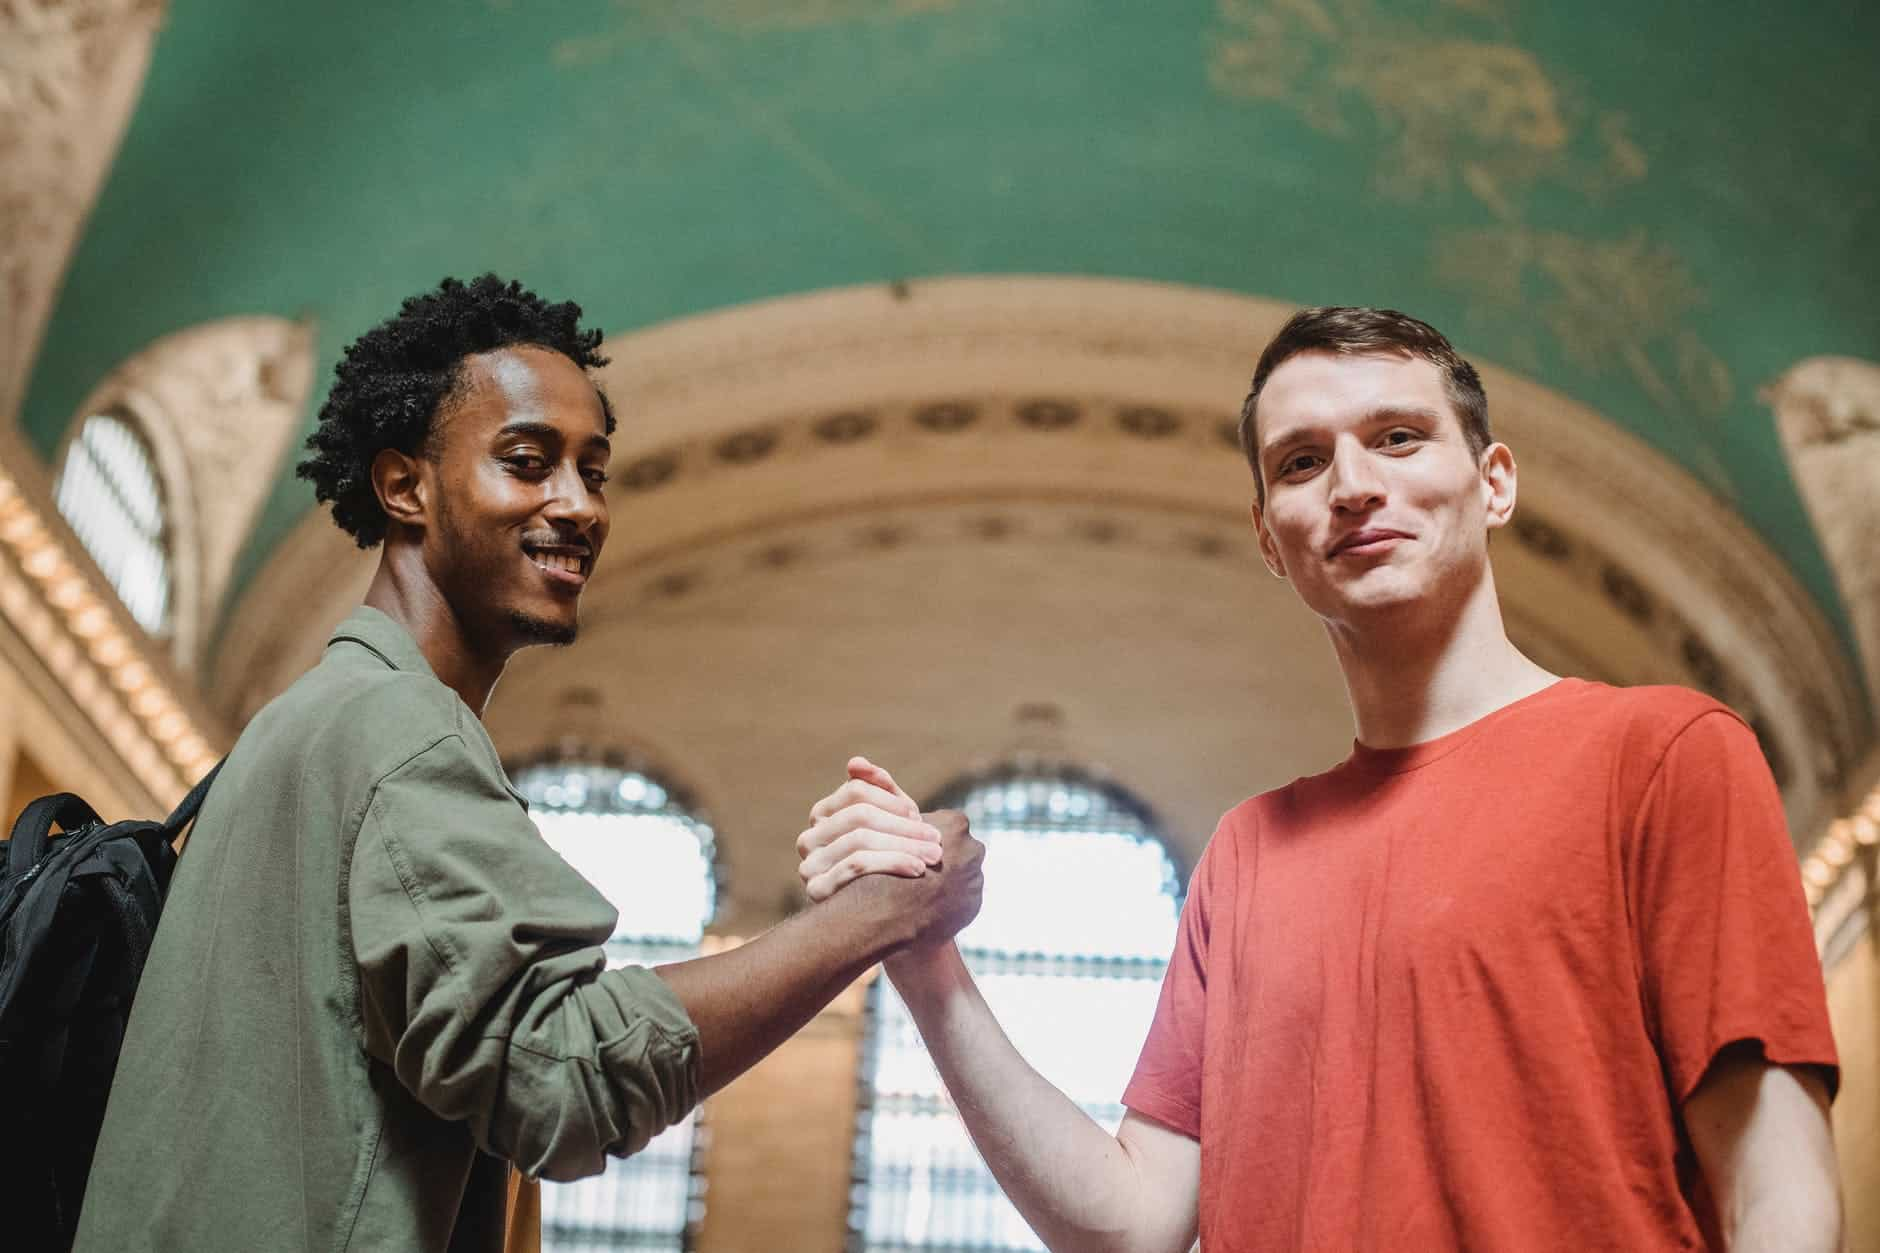 smiling young diverse guys giving diving dap after meeting in aged building Why is Self Awareness So Important For Success?